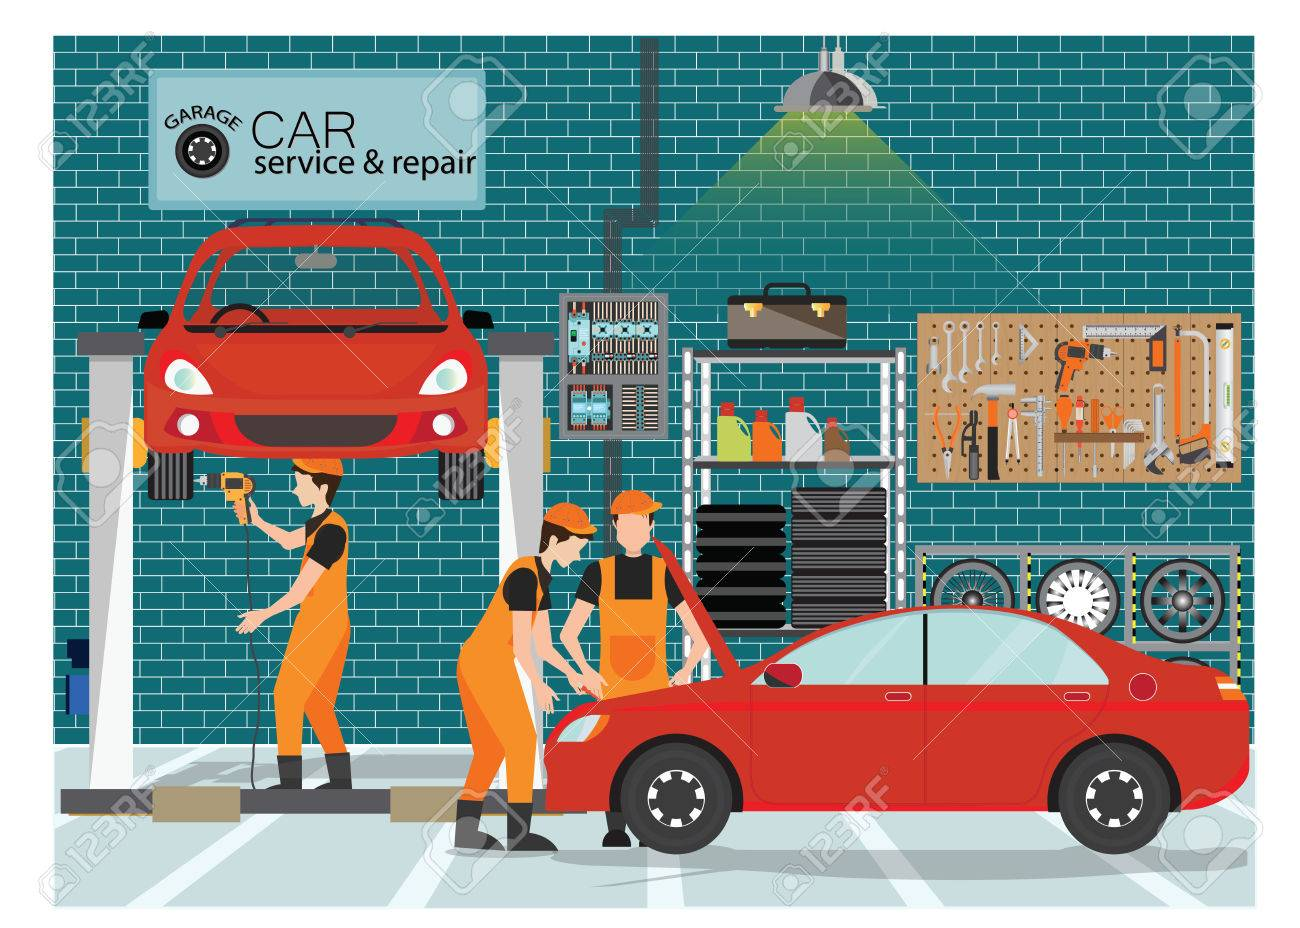 Car service and repair center or garage with worker, exterior building with the various departments, vector illustration.. - 82192735